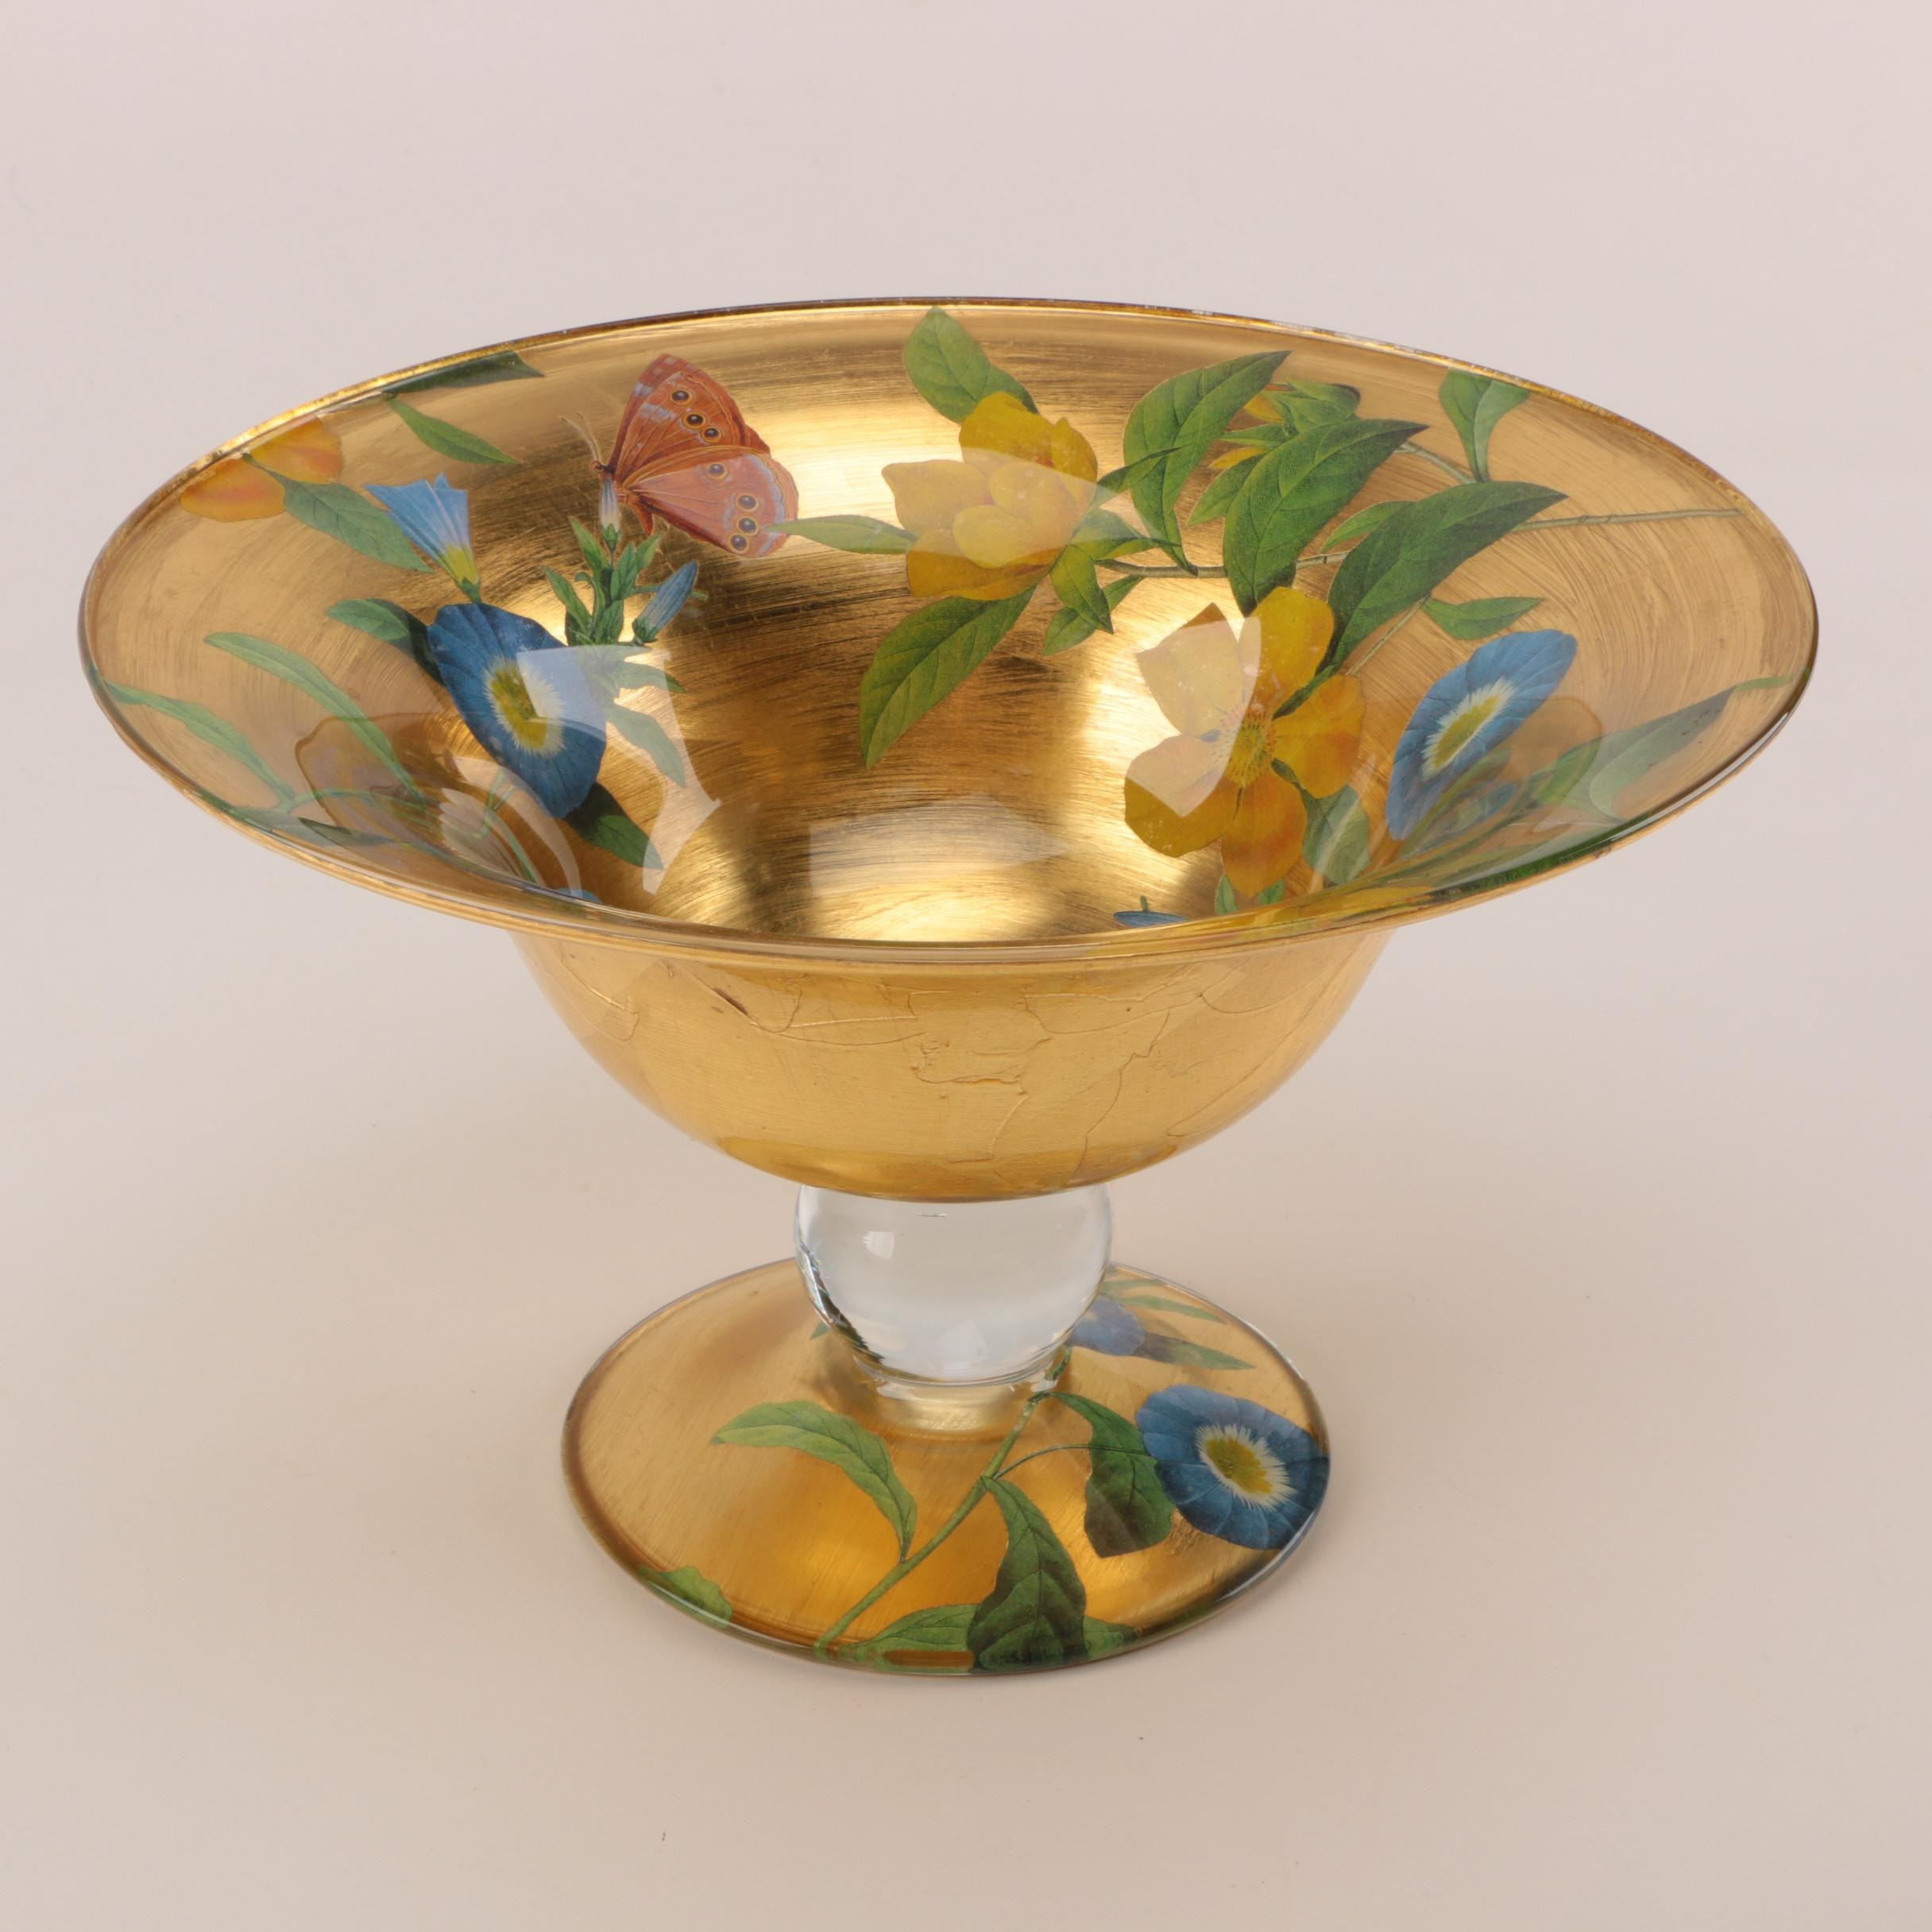 Signed Hand-Embellished Gold Tone Floral Footed Bowl